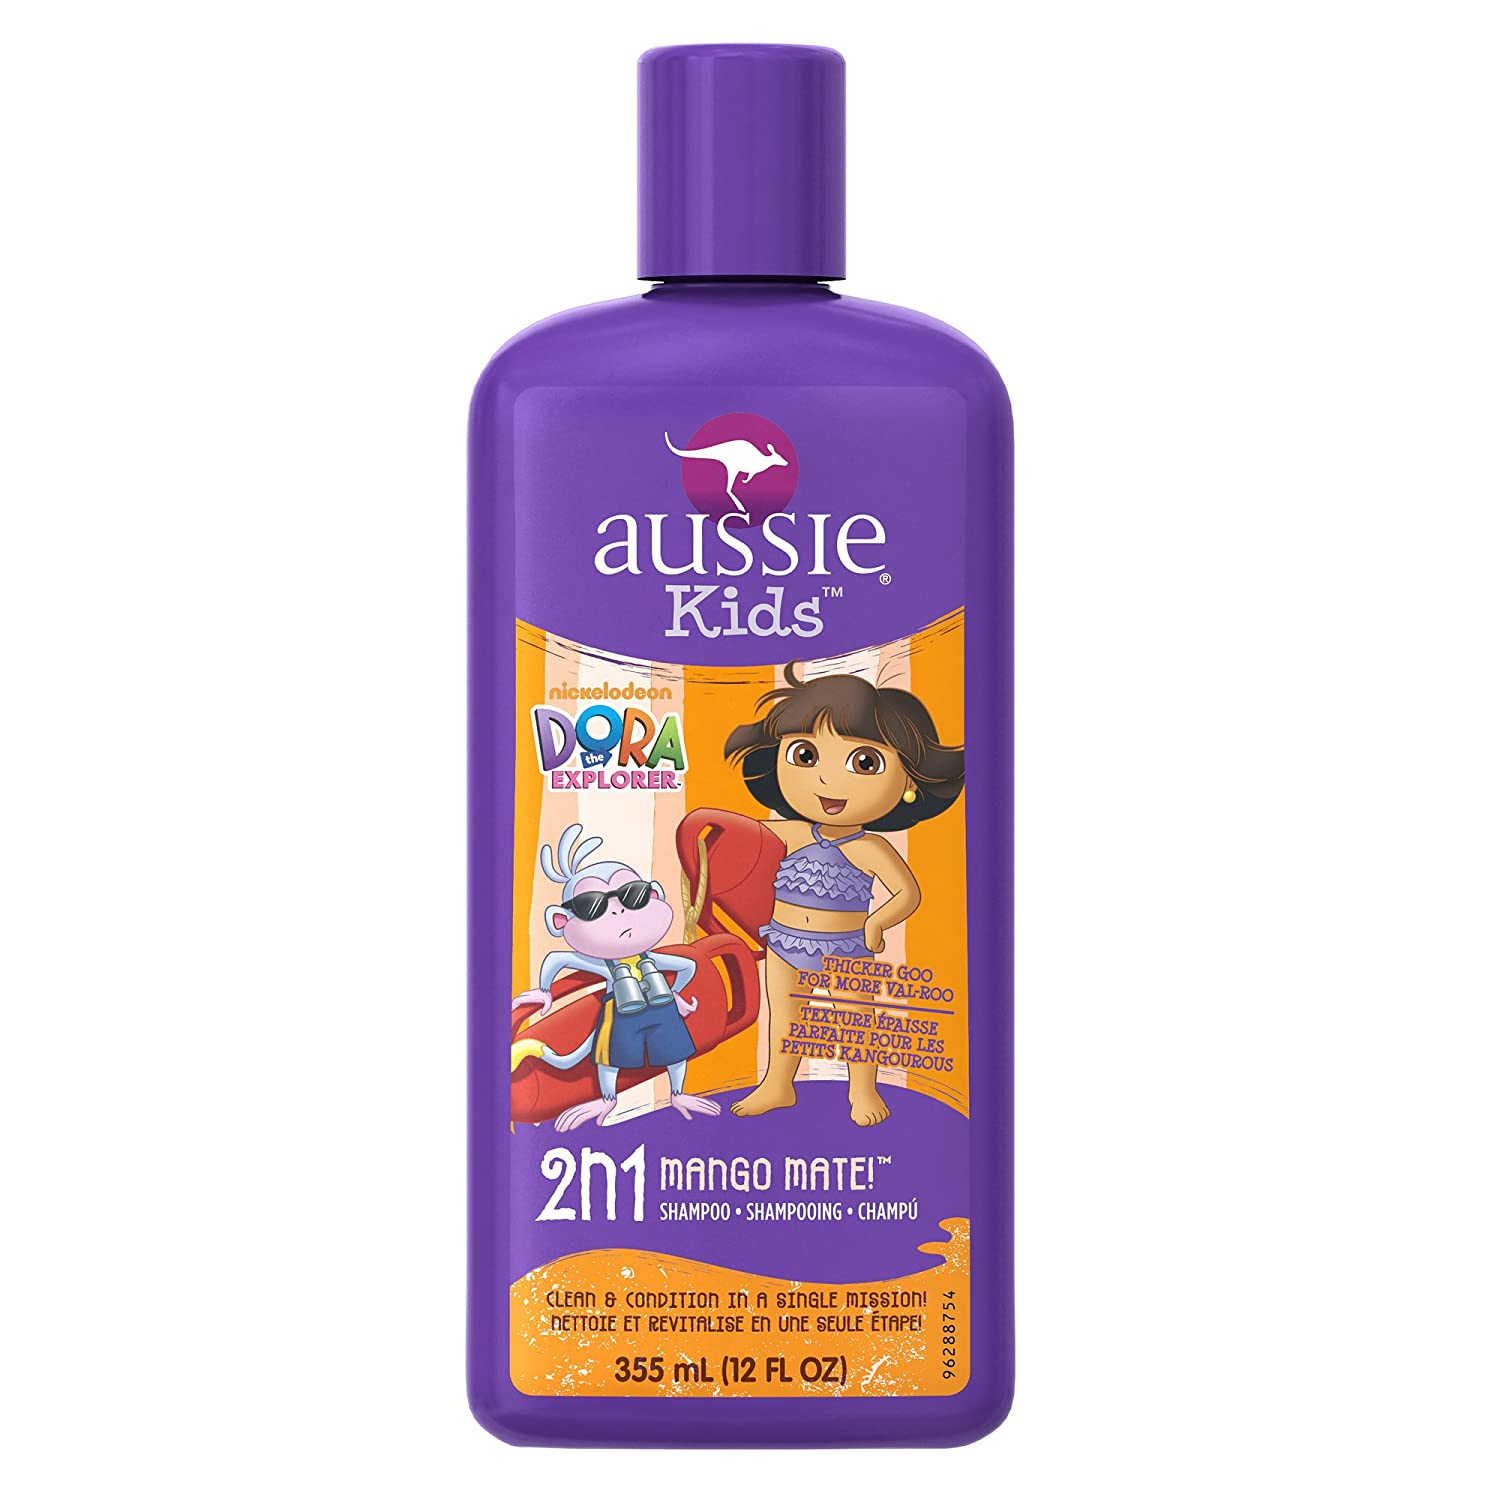 Aussie Dora the Explorer Mango Mate 2 In 1 Shampoo & Conditioner, 12-Fluid Ounce